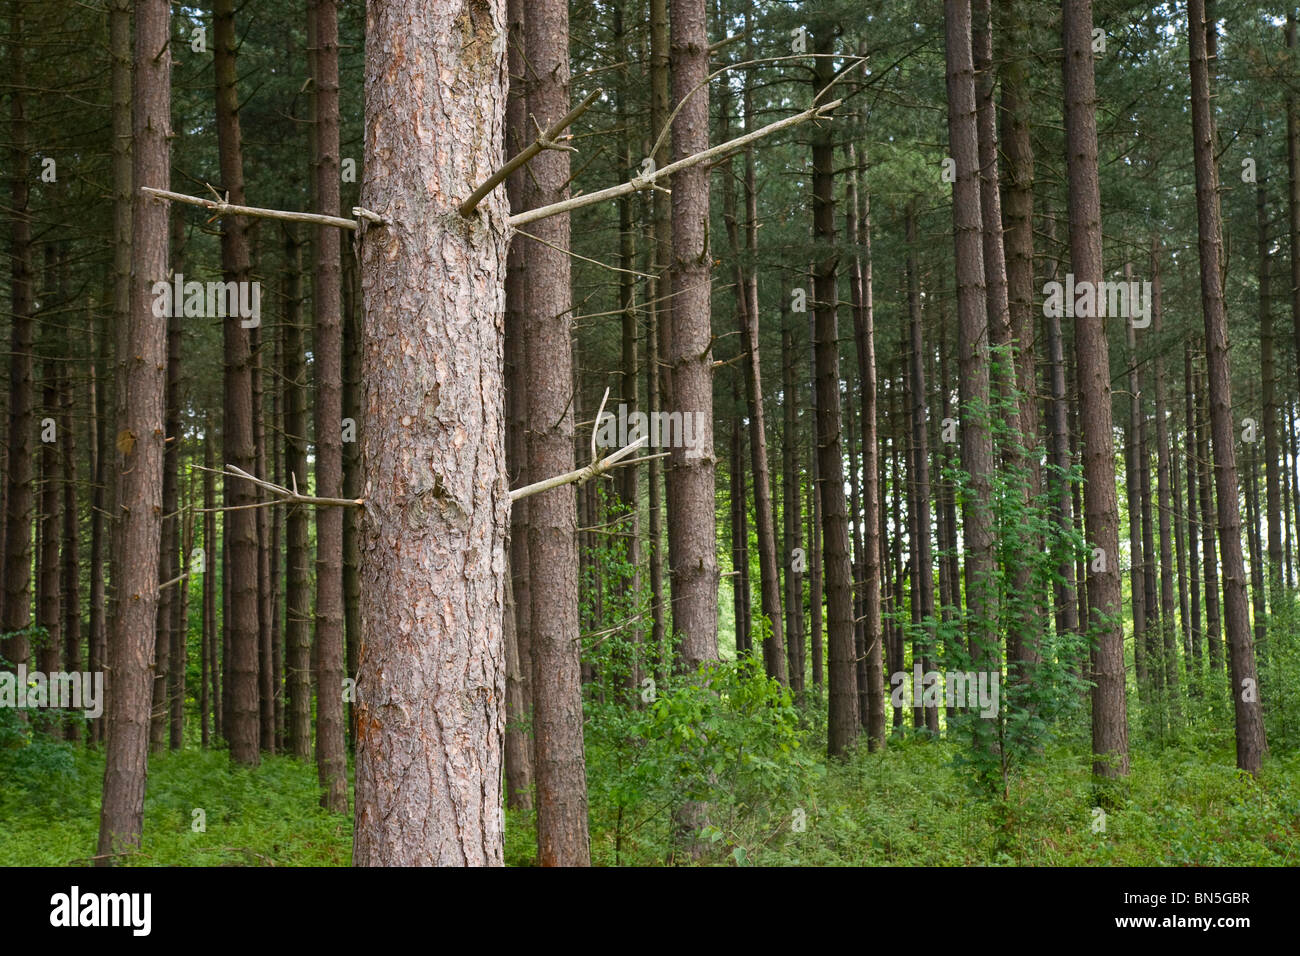 Scots Pine growing in mixed woodland in Nottinghamshire - Stock Image